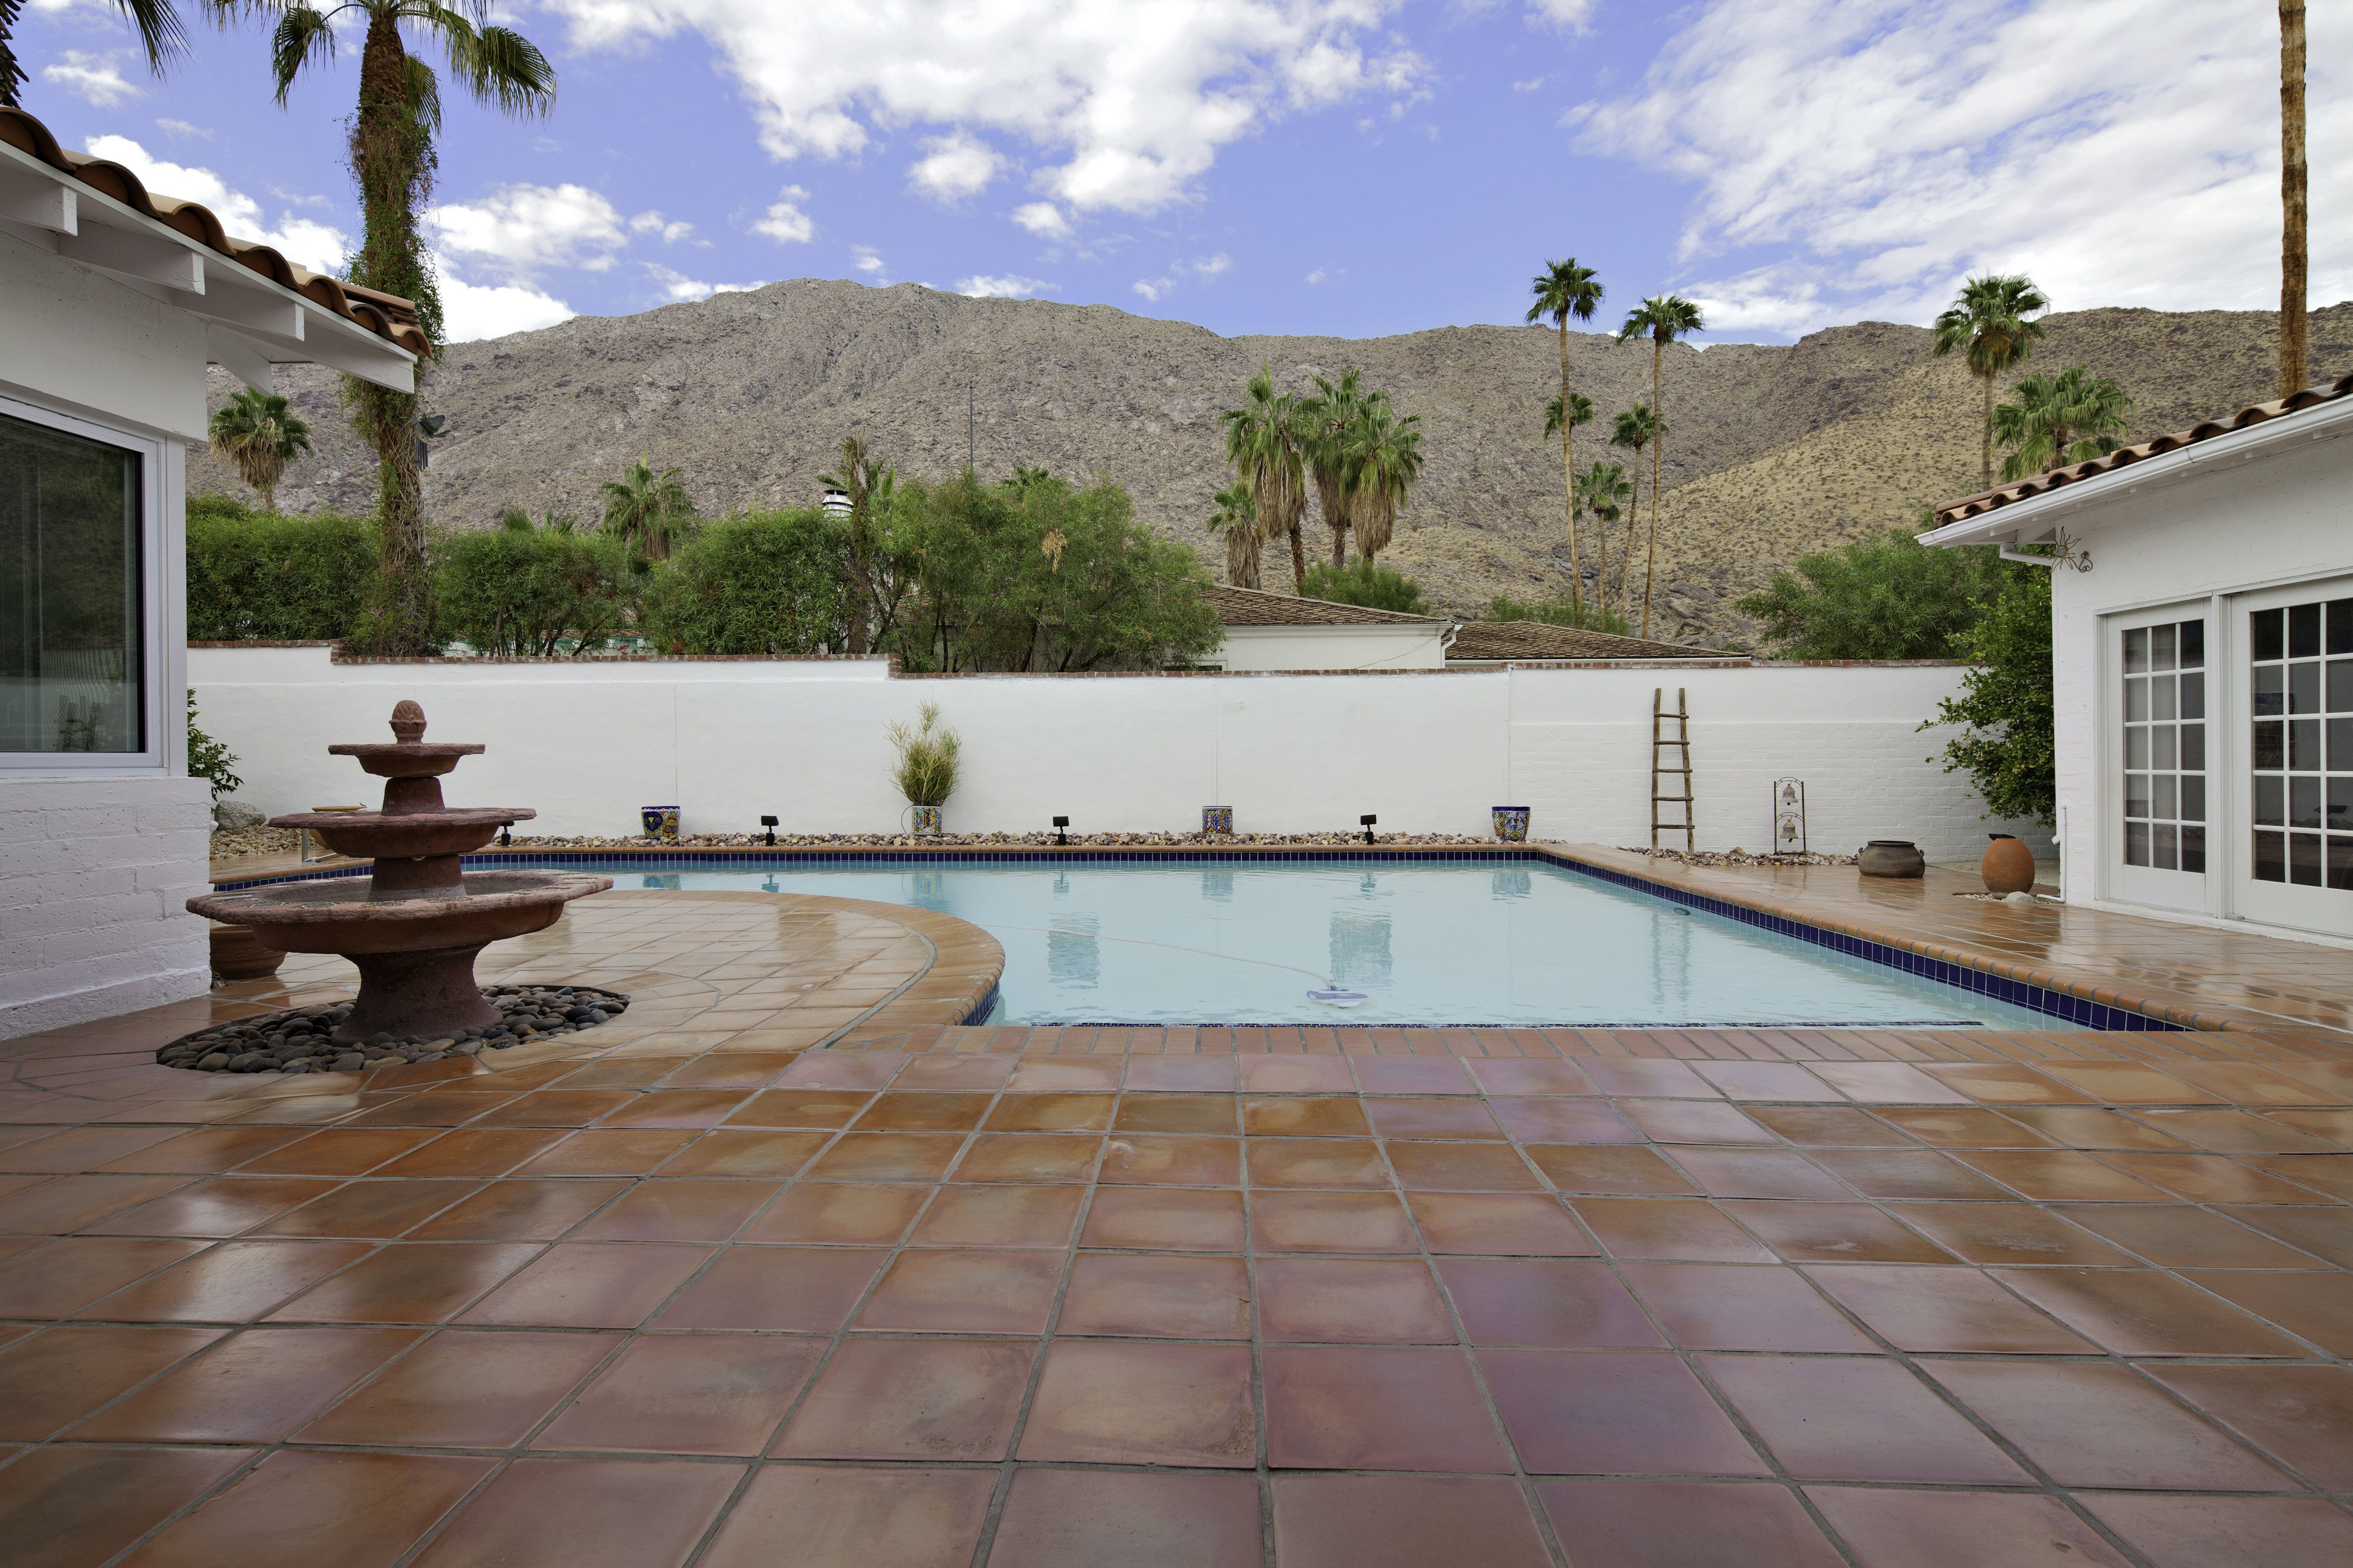 How To Choose Pool Deck And Patio Materials